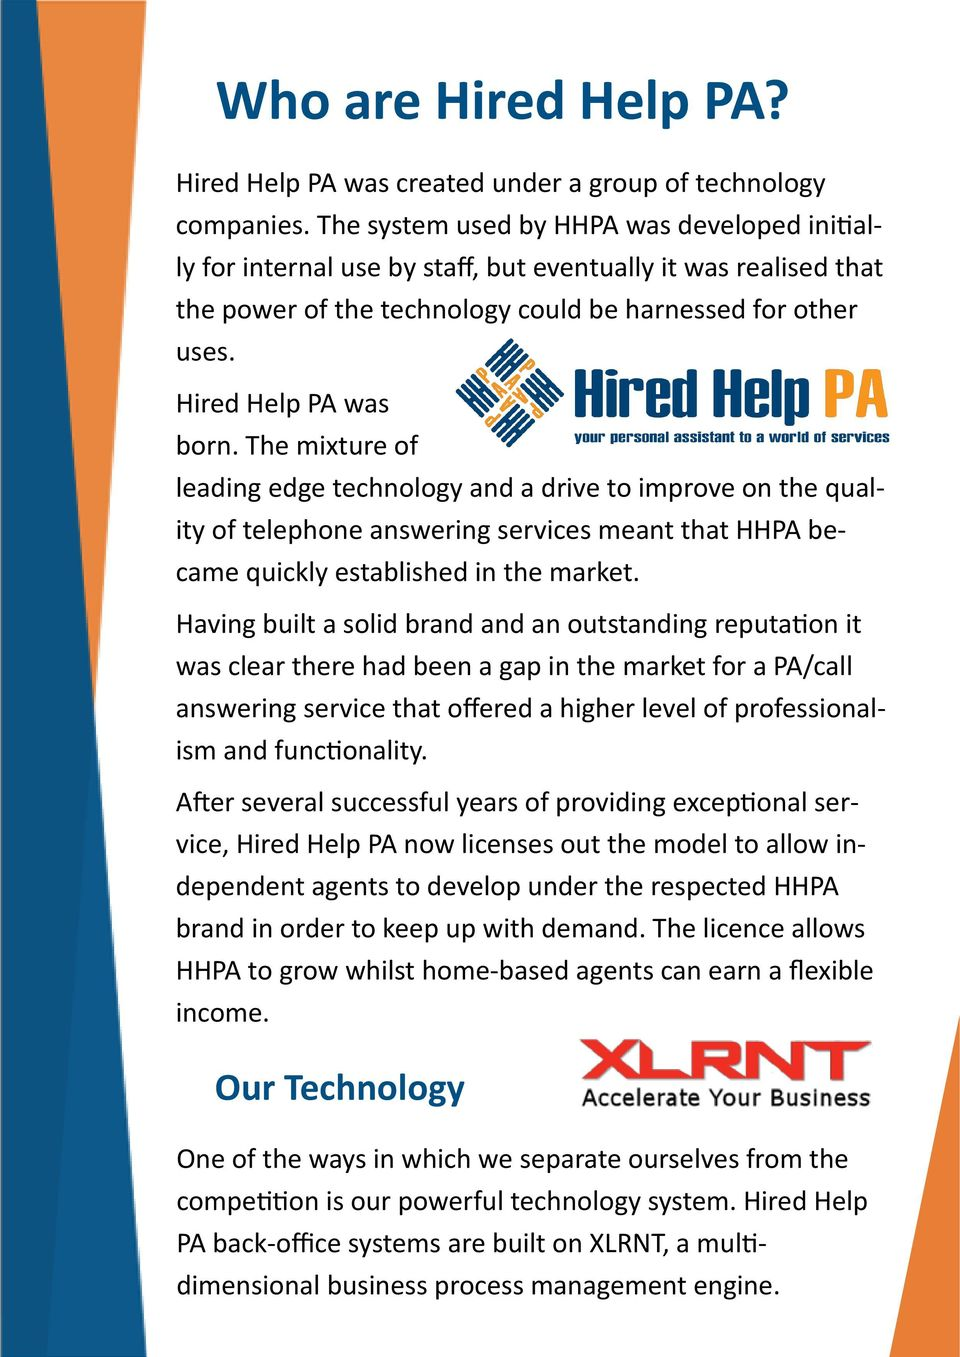 The mixture of leading edge technology and a drive to improve on the quality of telephone answering services meant that HHPA became quickly established in the market.